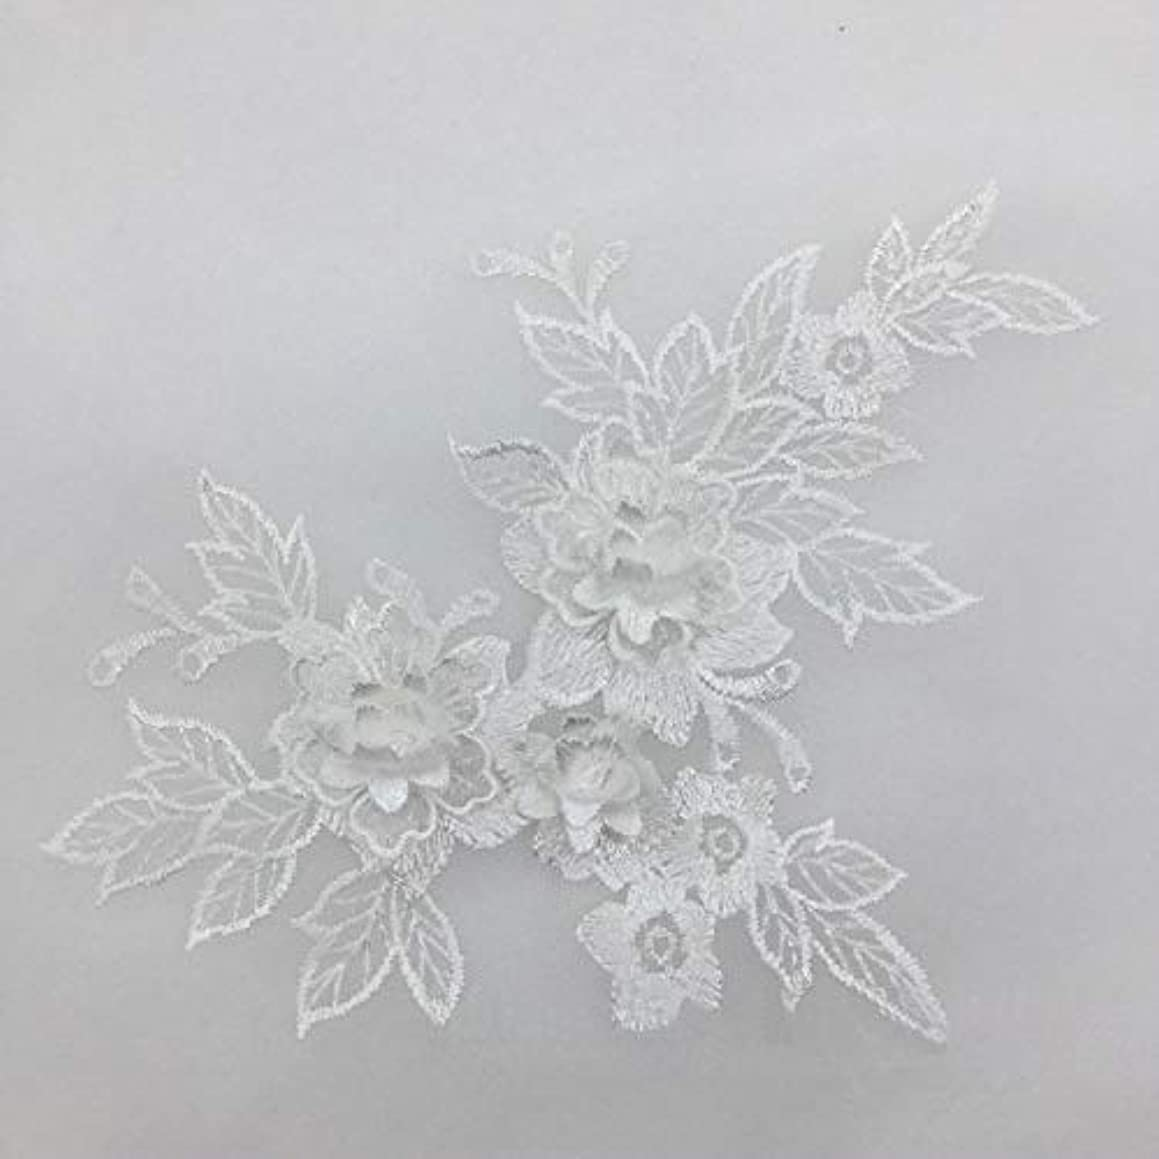 2 Pcs Colored 3D Flower Lace Applique Embroidered Material Trim for DIY Wedding Dress Veil Accessories (White)